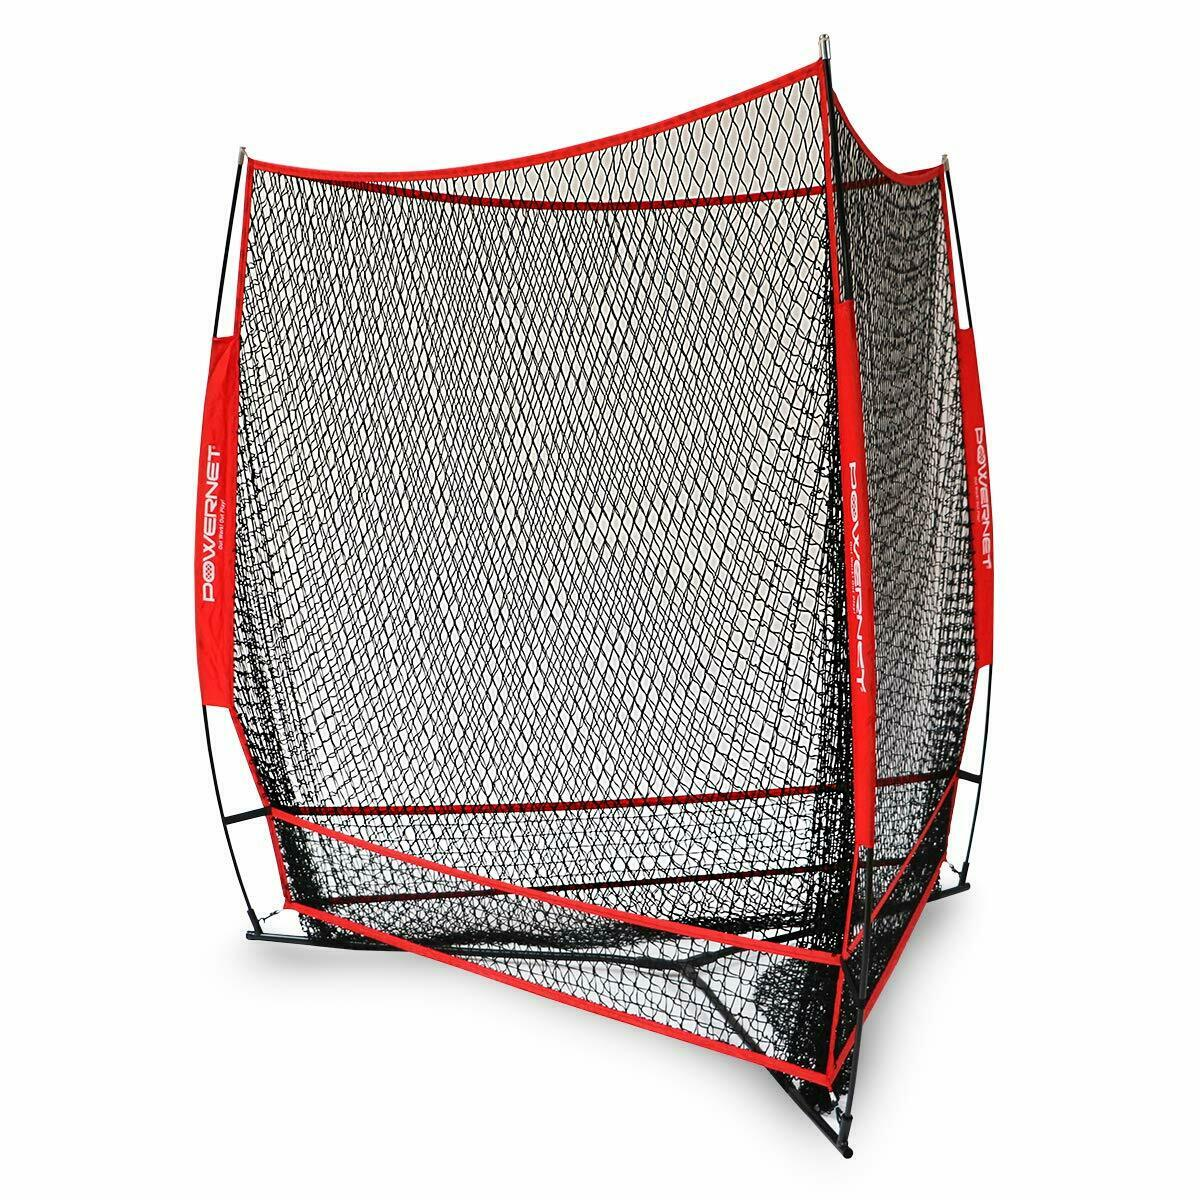 PowerNet Triple Threat Baseball Softball Practice Training Net 7' x 7' 3 Sided